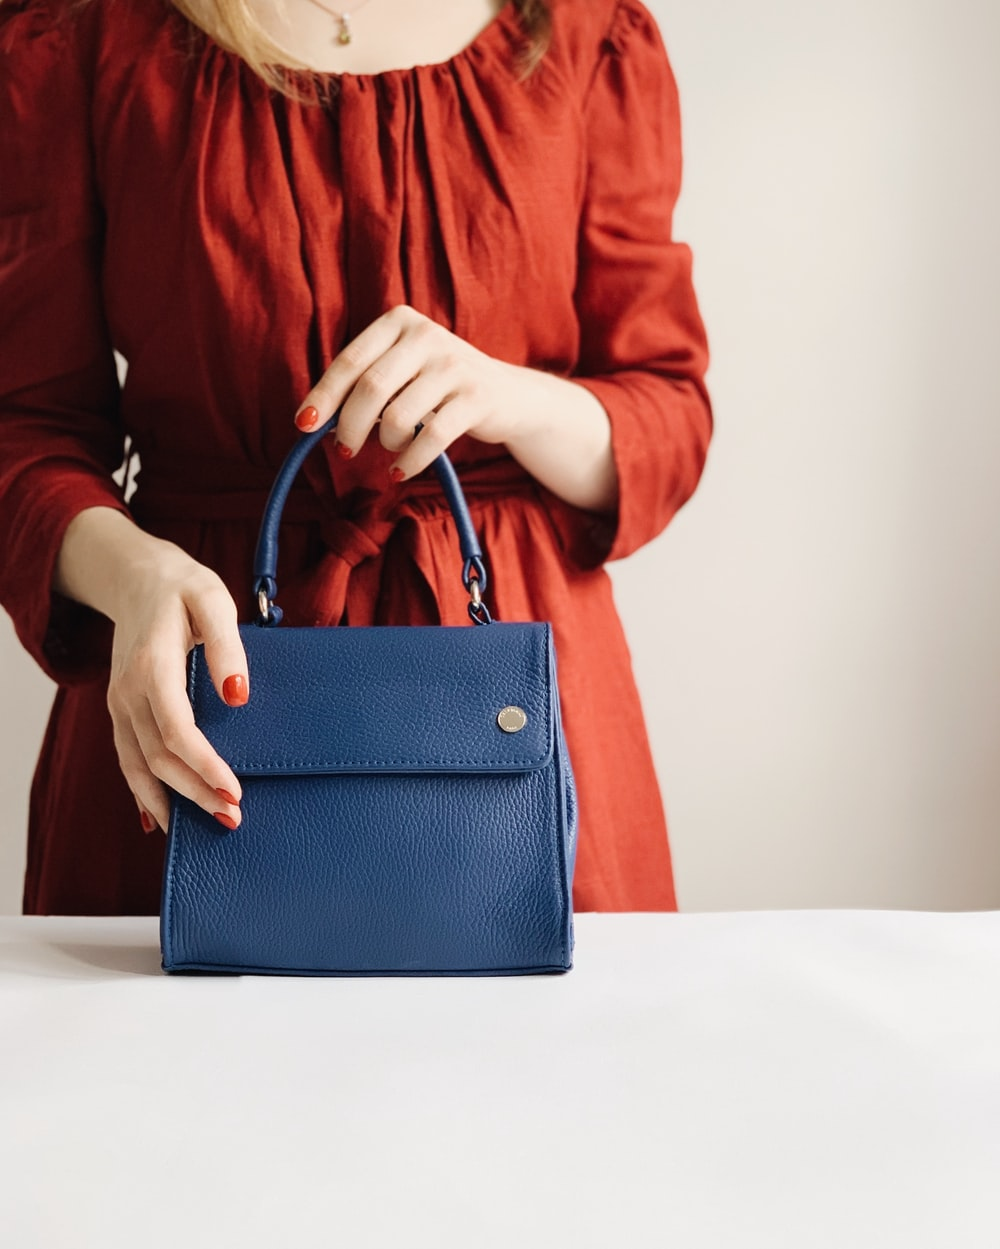 750 Handbag Pictures Free Images On Unsplash